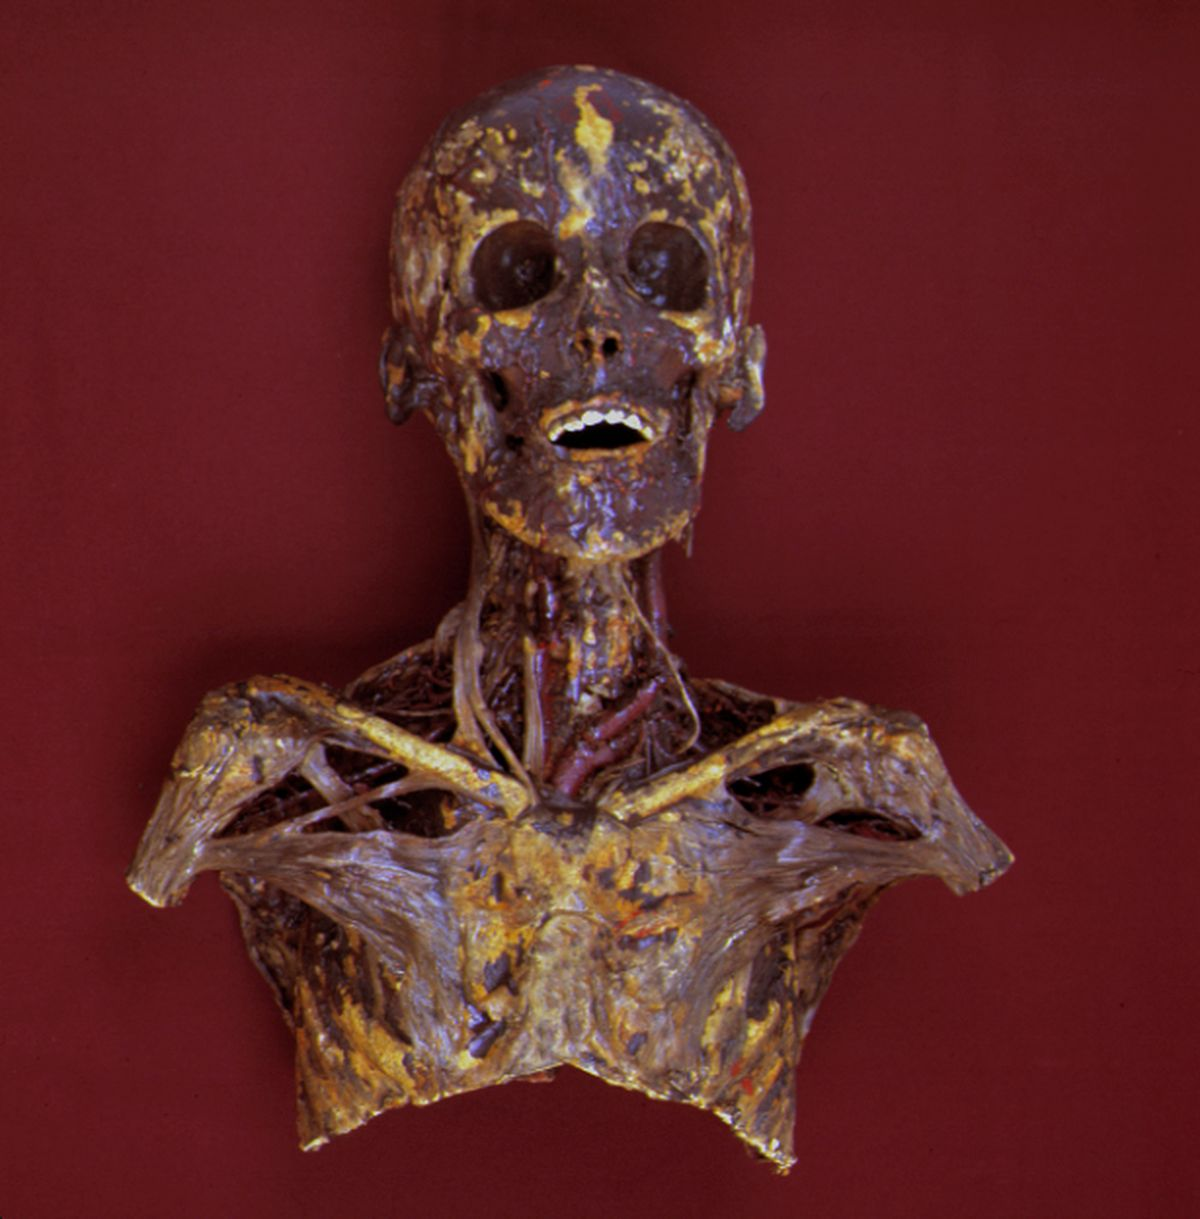 A Burns collection specimen shows part of the head, neck and shoulder area, with an emphasis on the anatomy of the neck area.